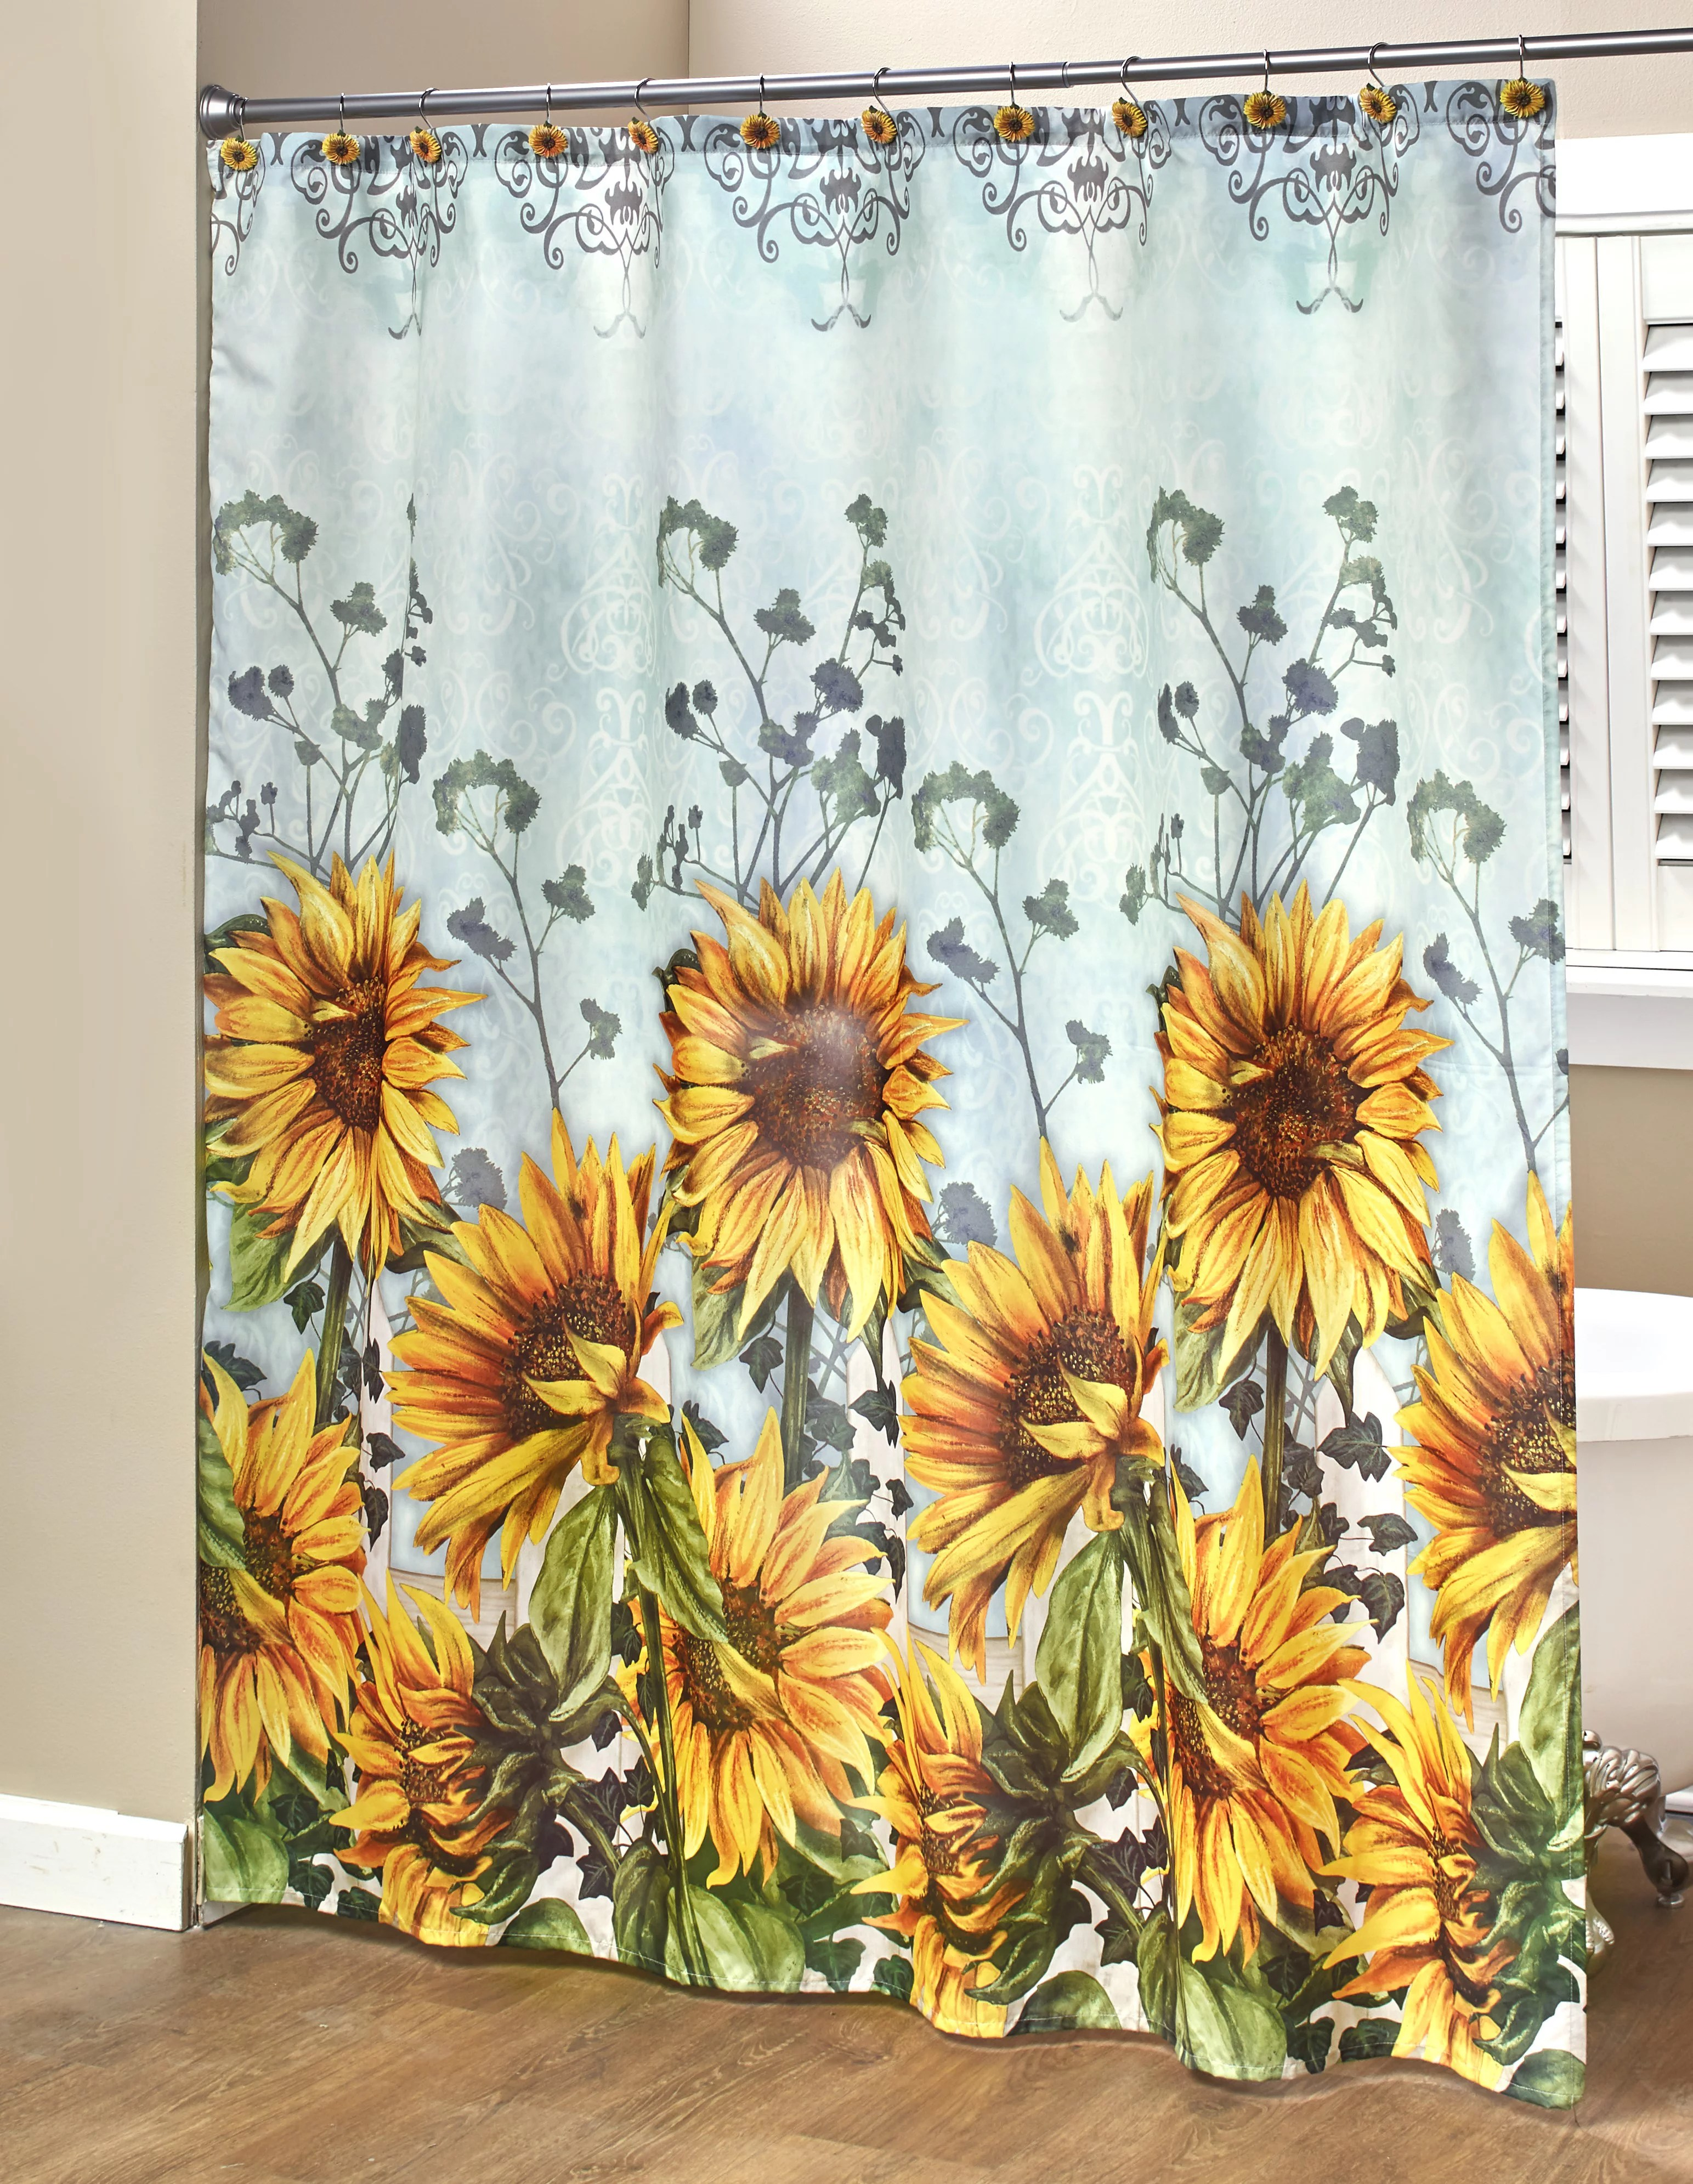 sunflower fabric shower curtain with floral farmhouse accents